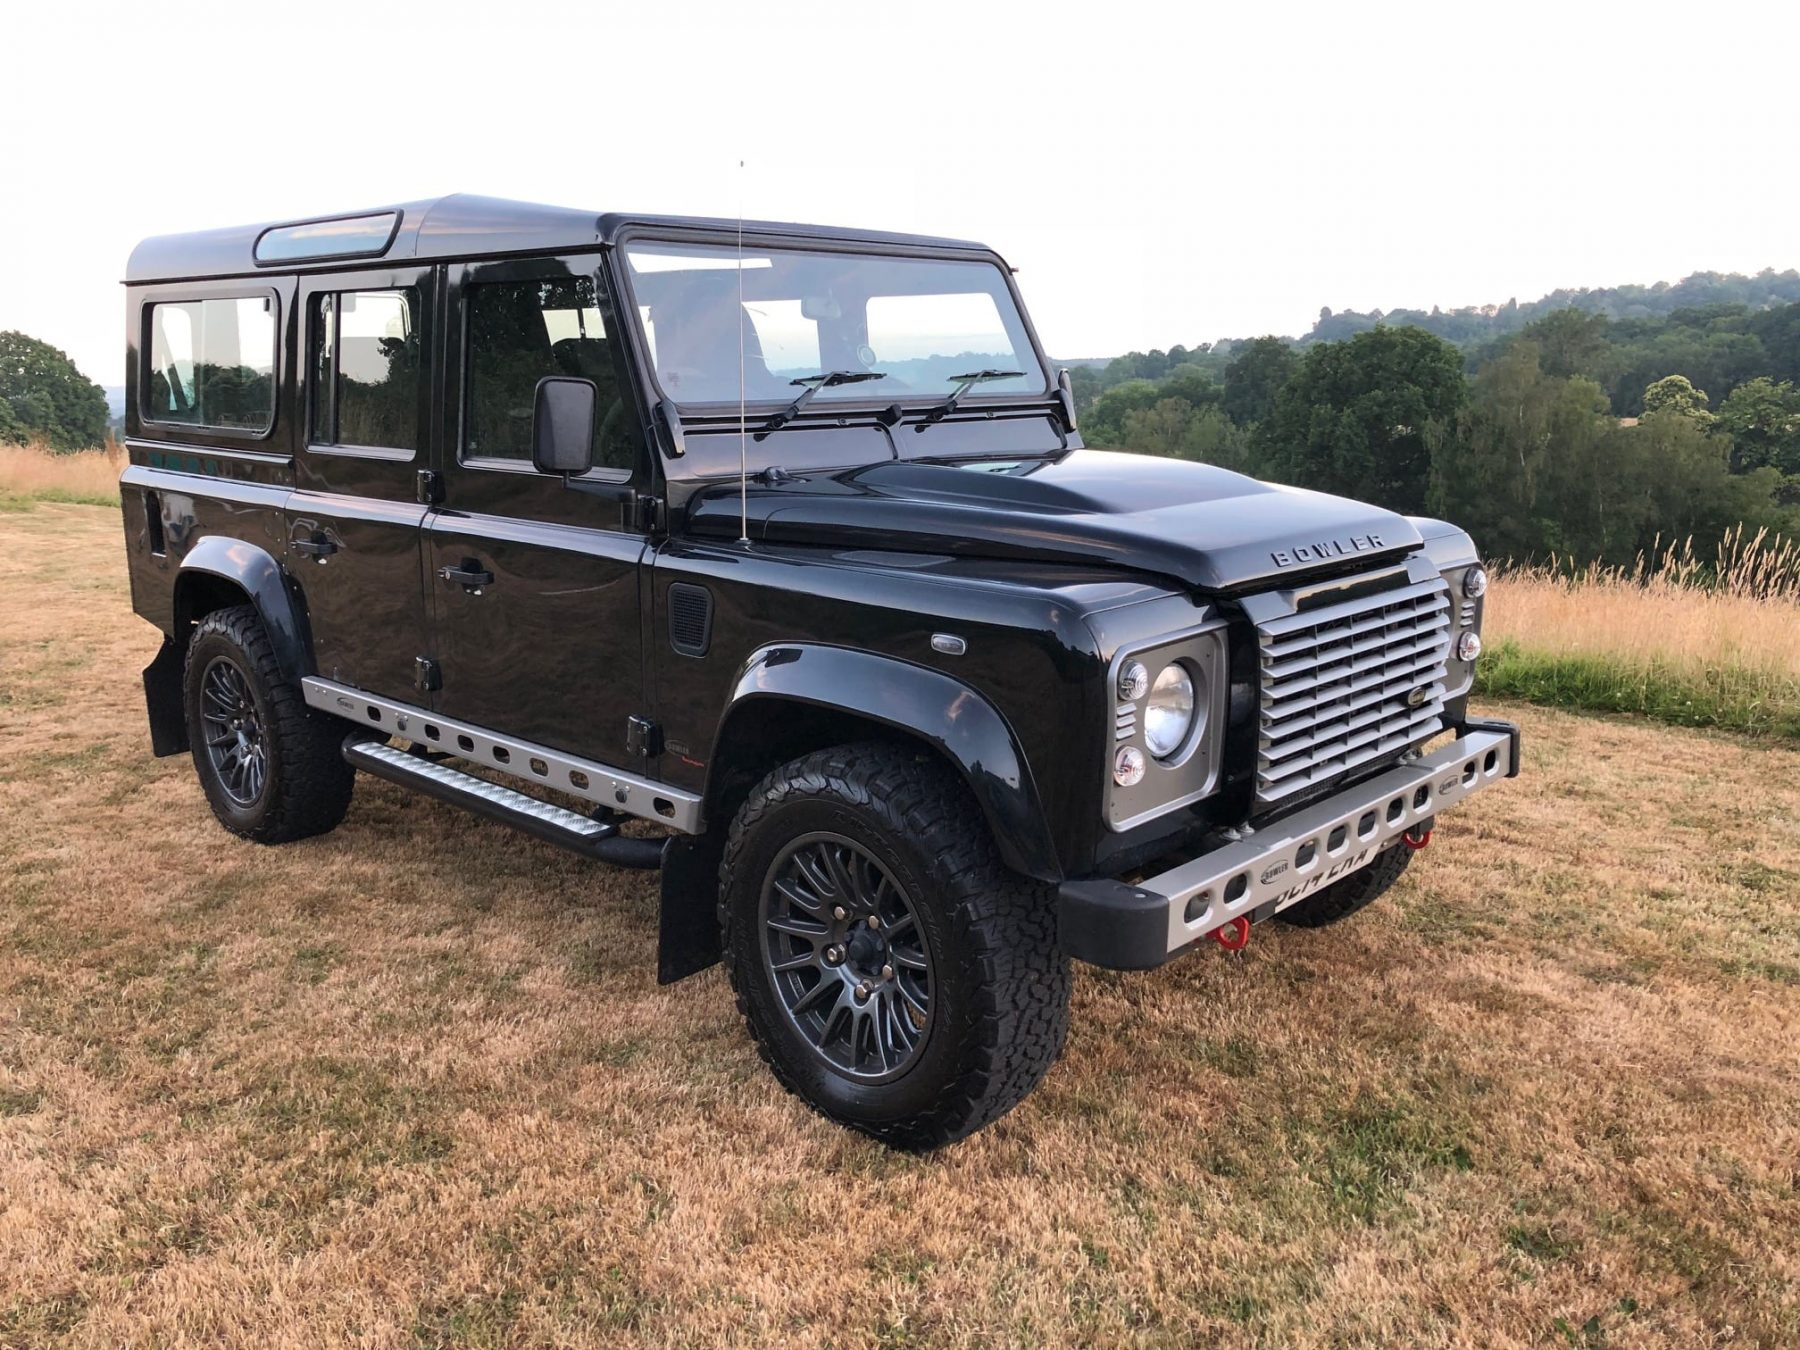 2014 Bowler Modified Defender 110XS